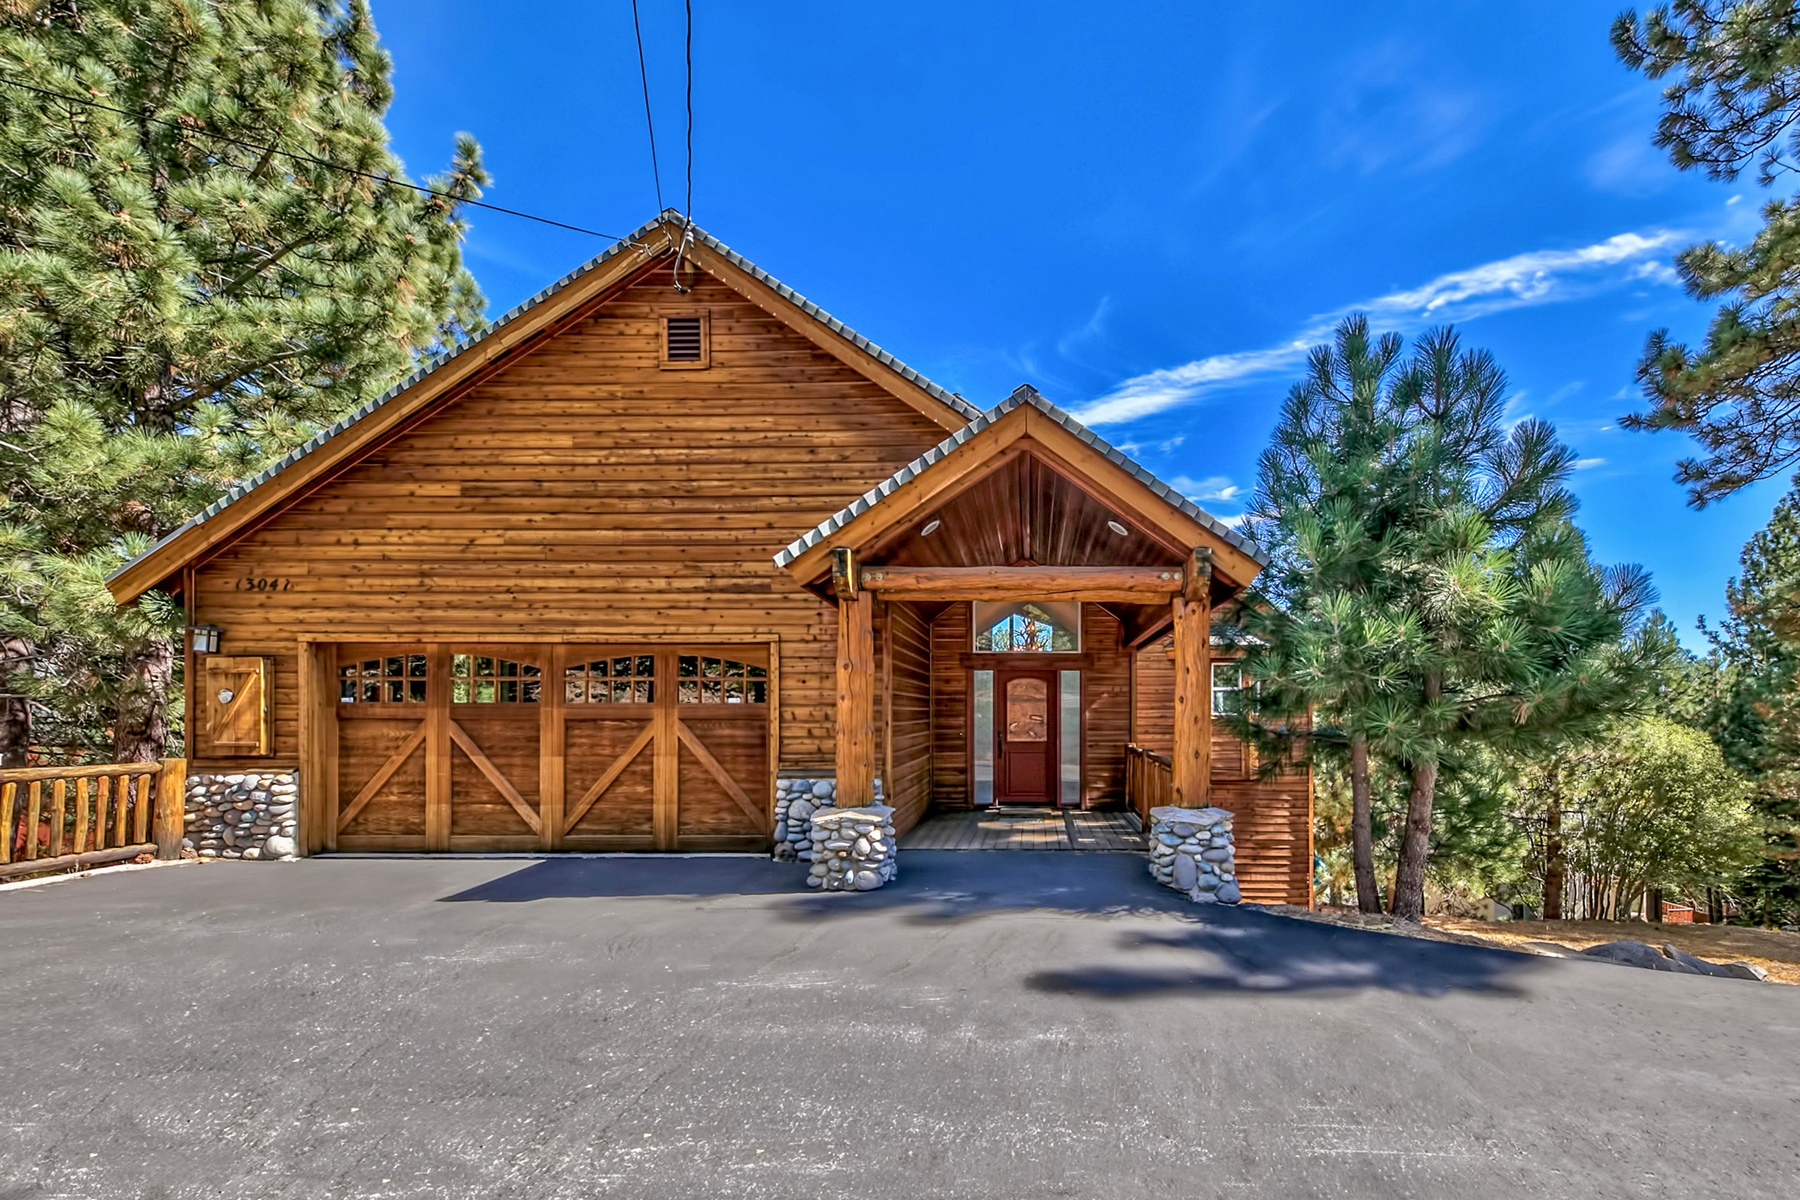 Single Family Home for Active at 13041 Stockholm Way, Truckee, CA 13041 Stockholm Way Truckee, California 96161 United States